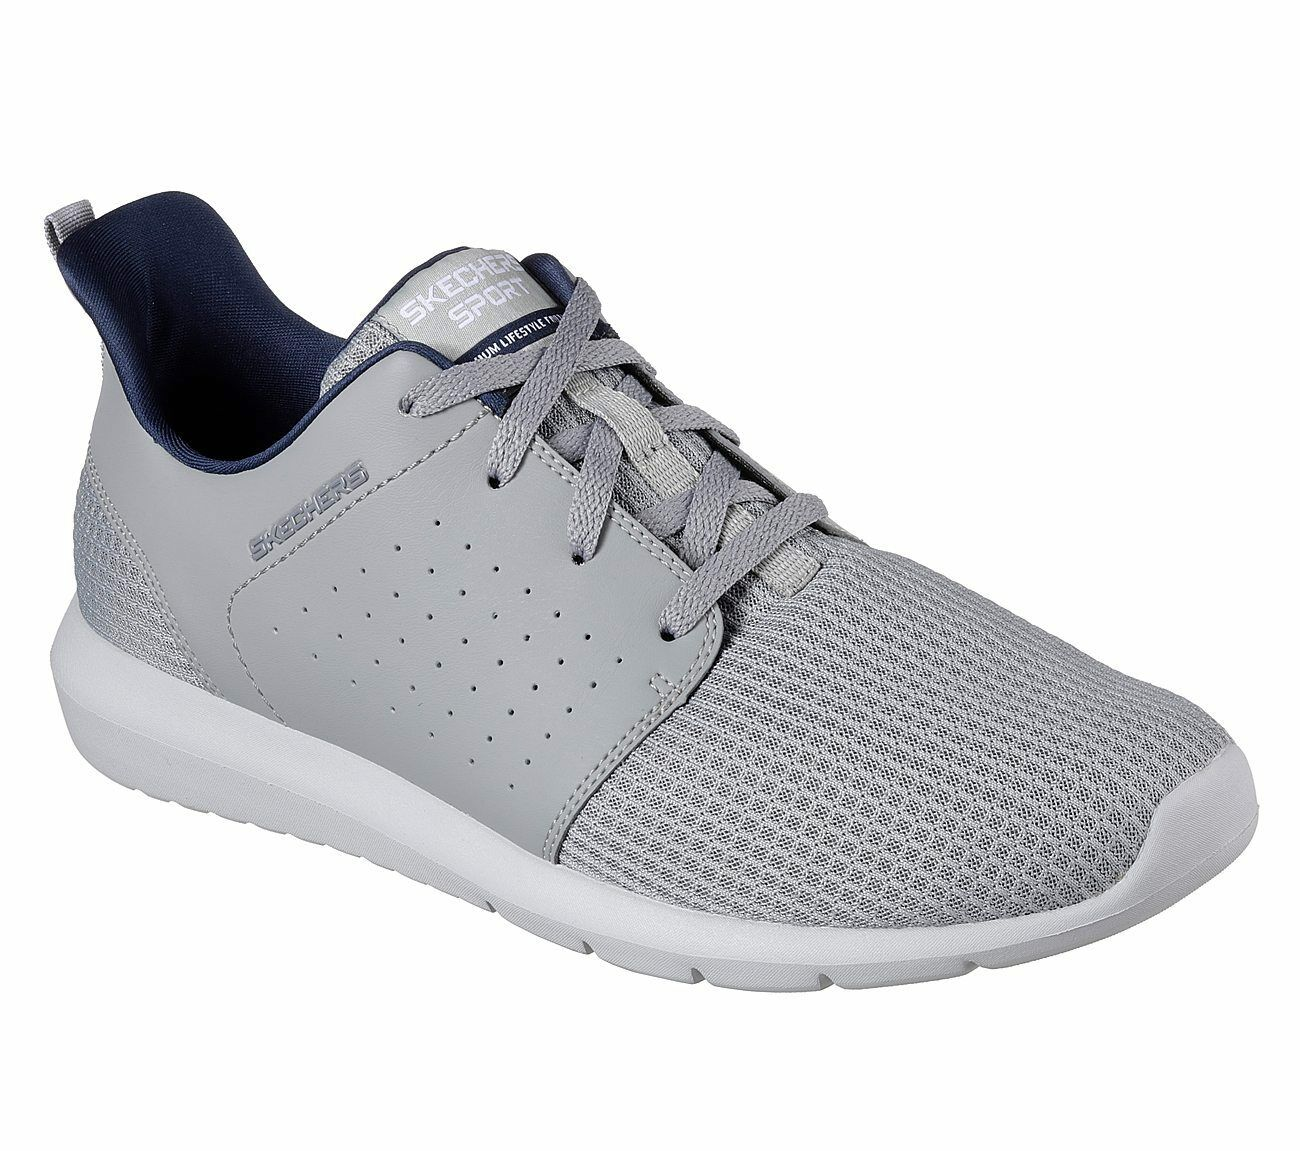 52390 Gray Skechers shoe Men Memory Foam Sport Mesh Leather Comfort Train Casual New shoes for men and women, limited time discount